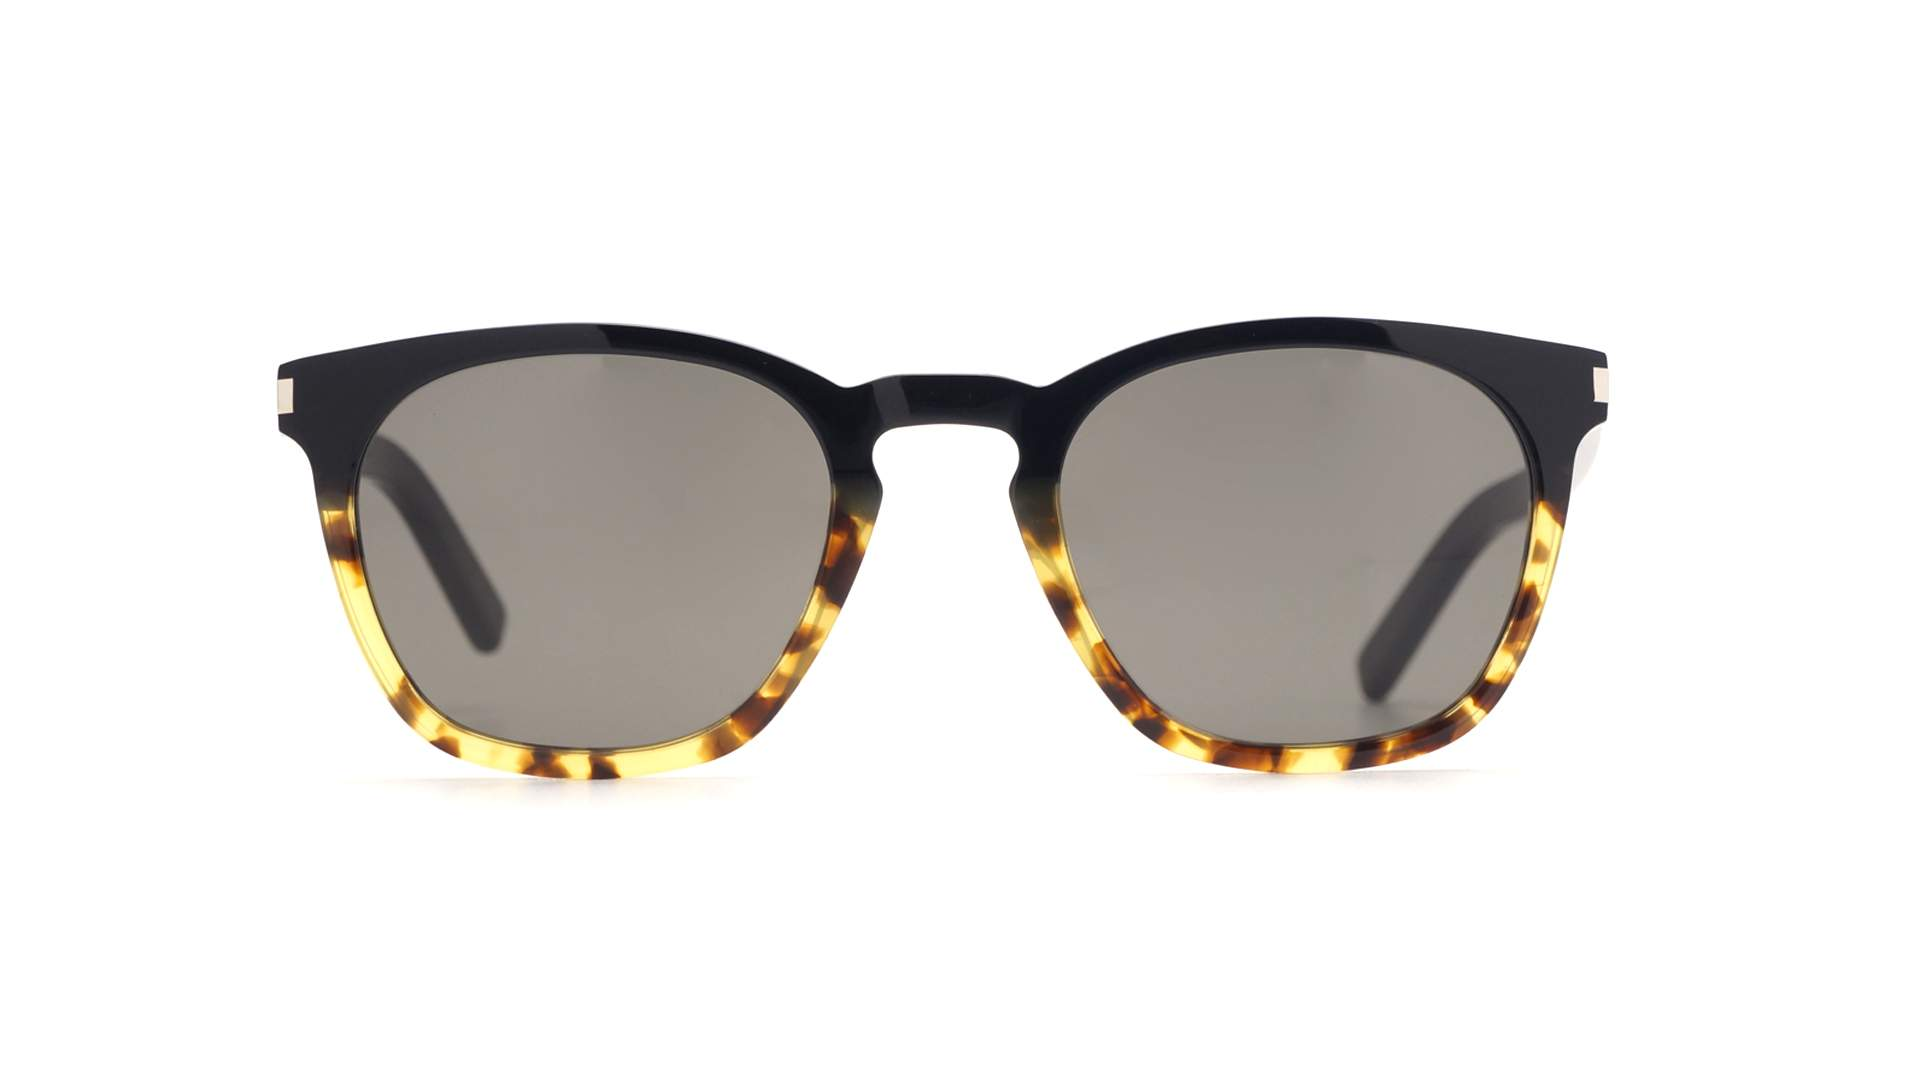 57f4047a14a62 Sunglasses Saint Laurent SL28 024 51-23 Tortoise Medium